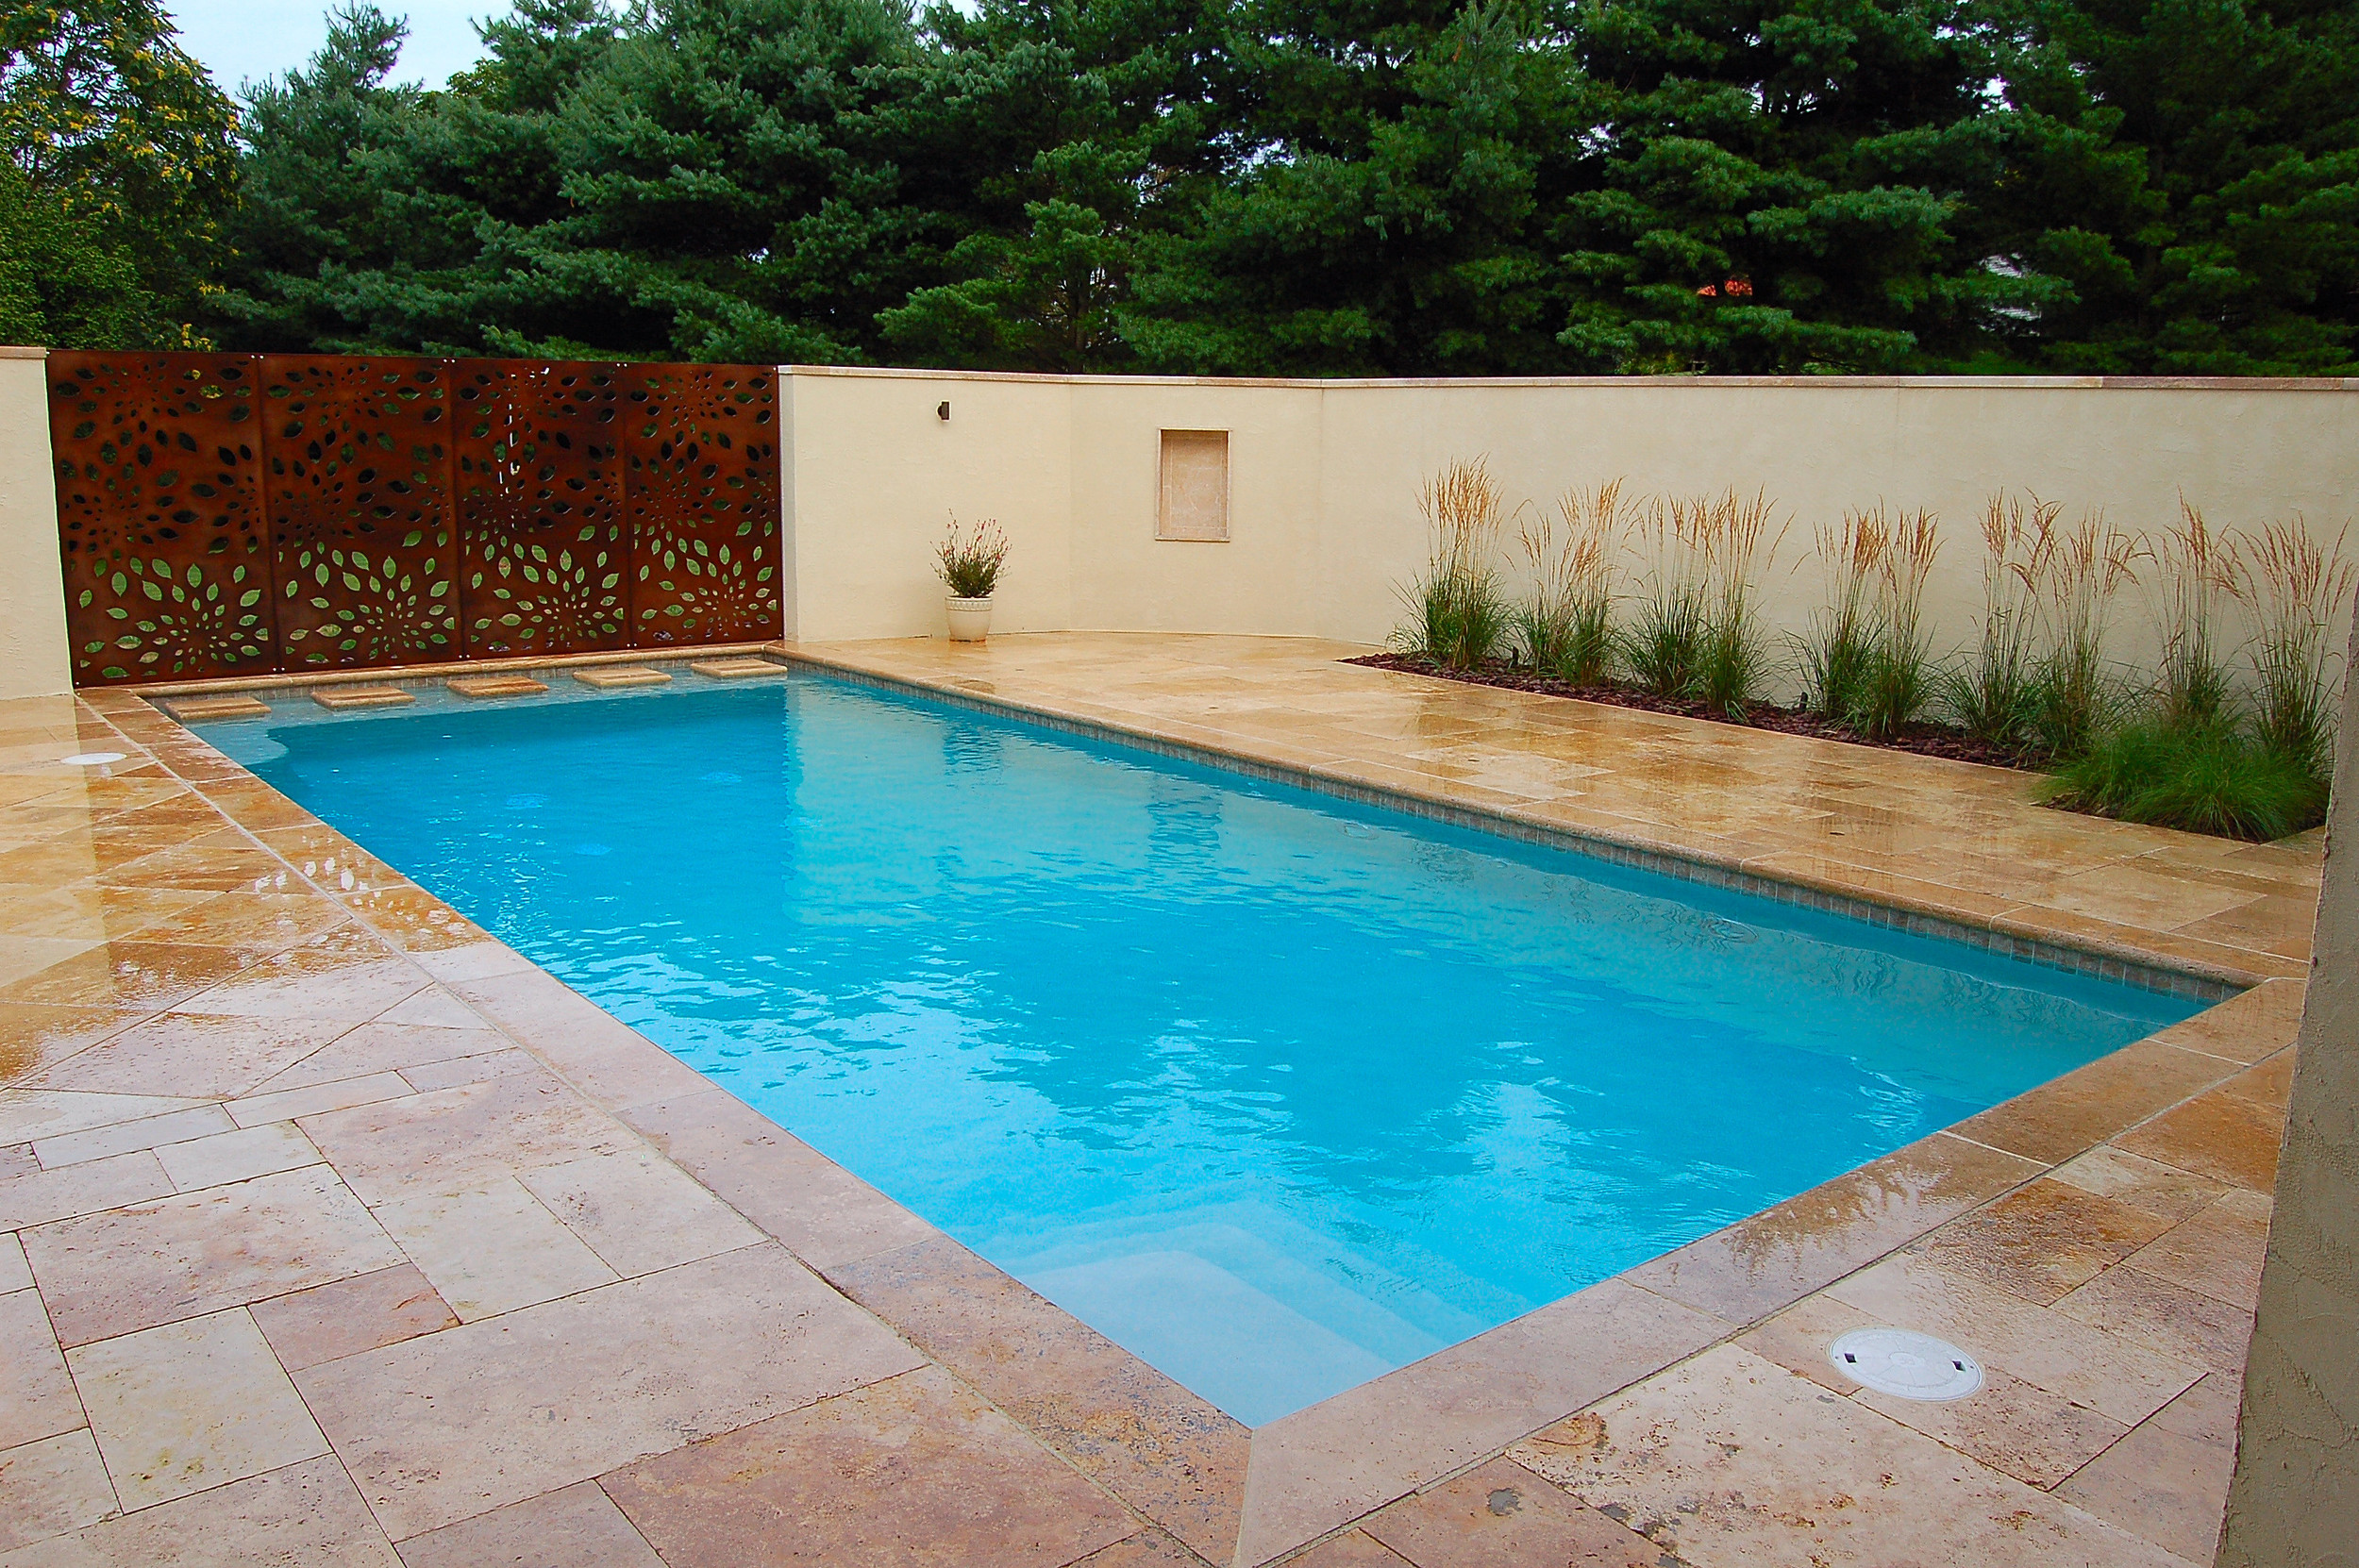 Millersville, PA swimming pool and landscape design